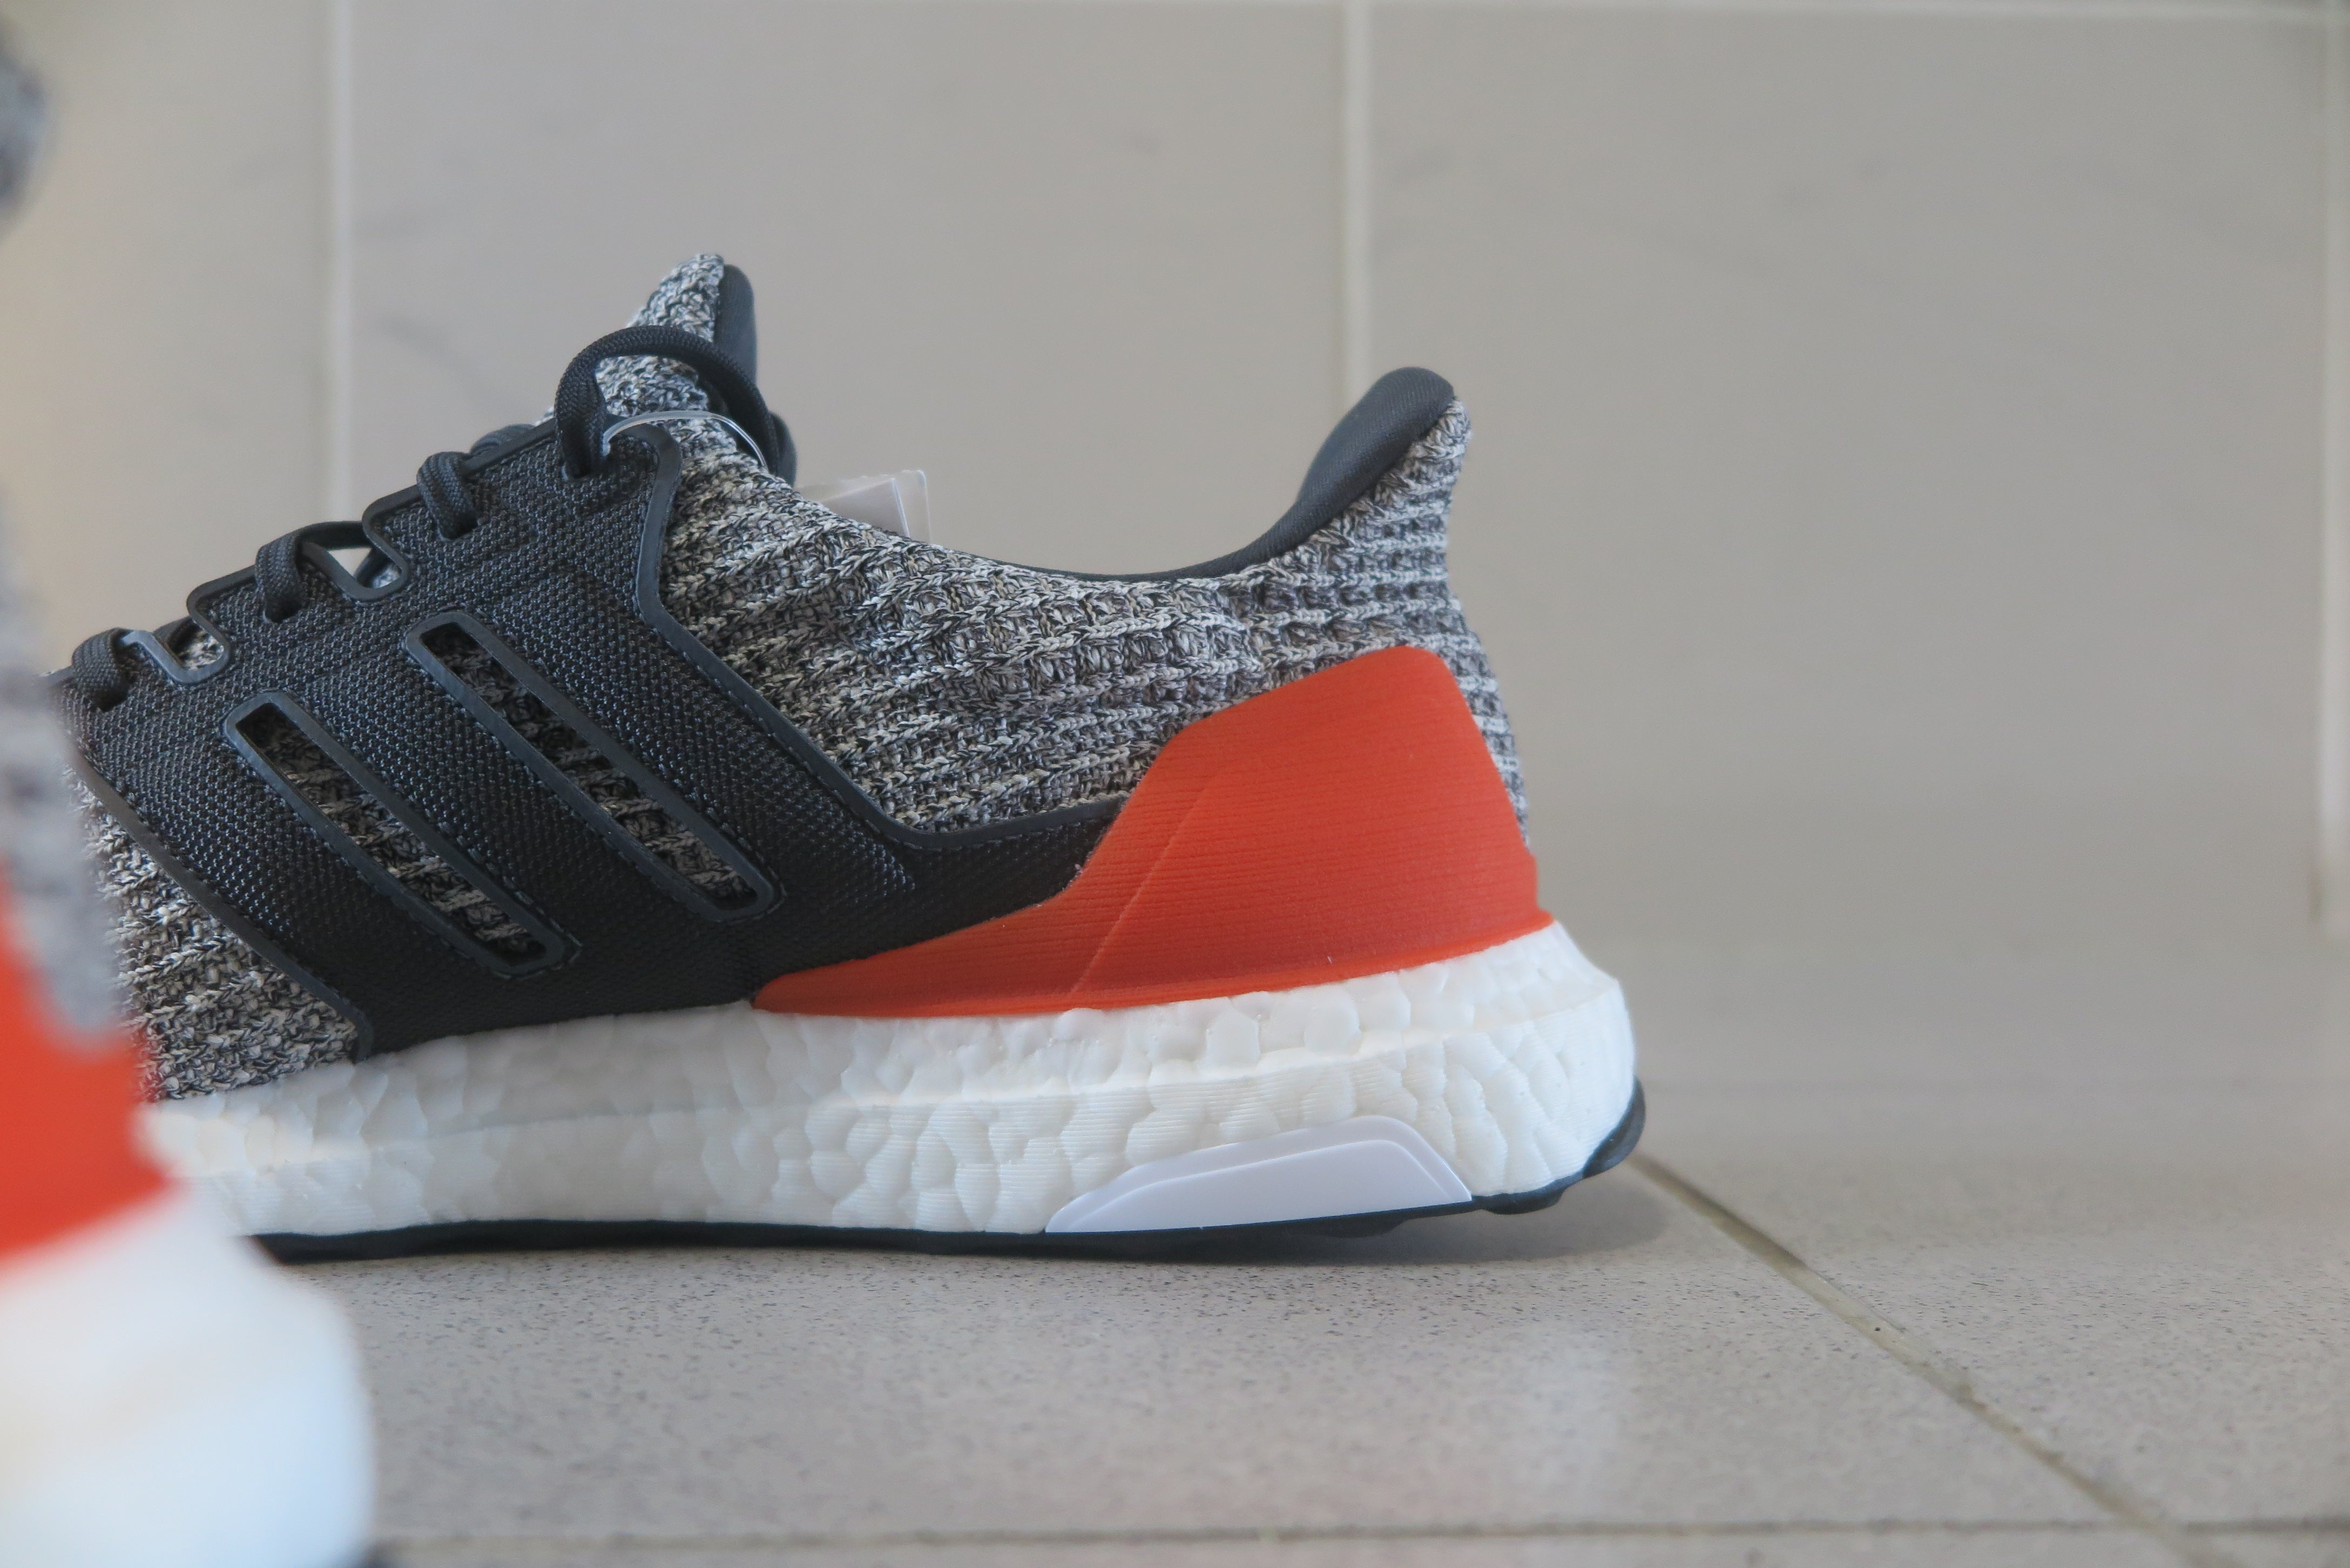 adidas Ultra Boost 4.0 - Raw White/Carbon/Active Orange #DB2834-Preorder Item-Navy Selected Shop